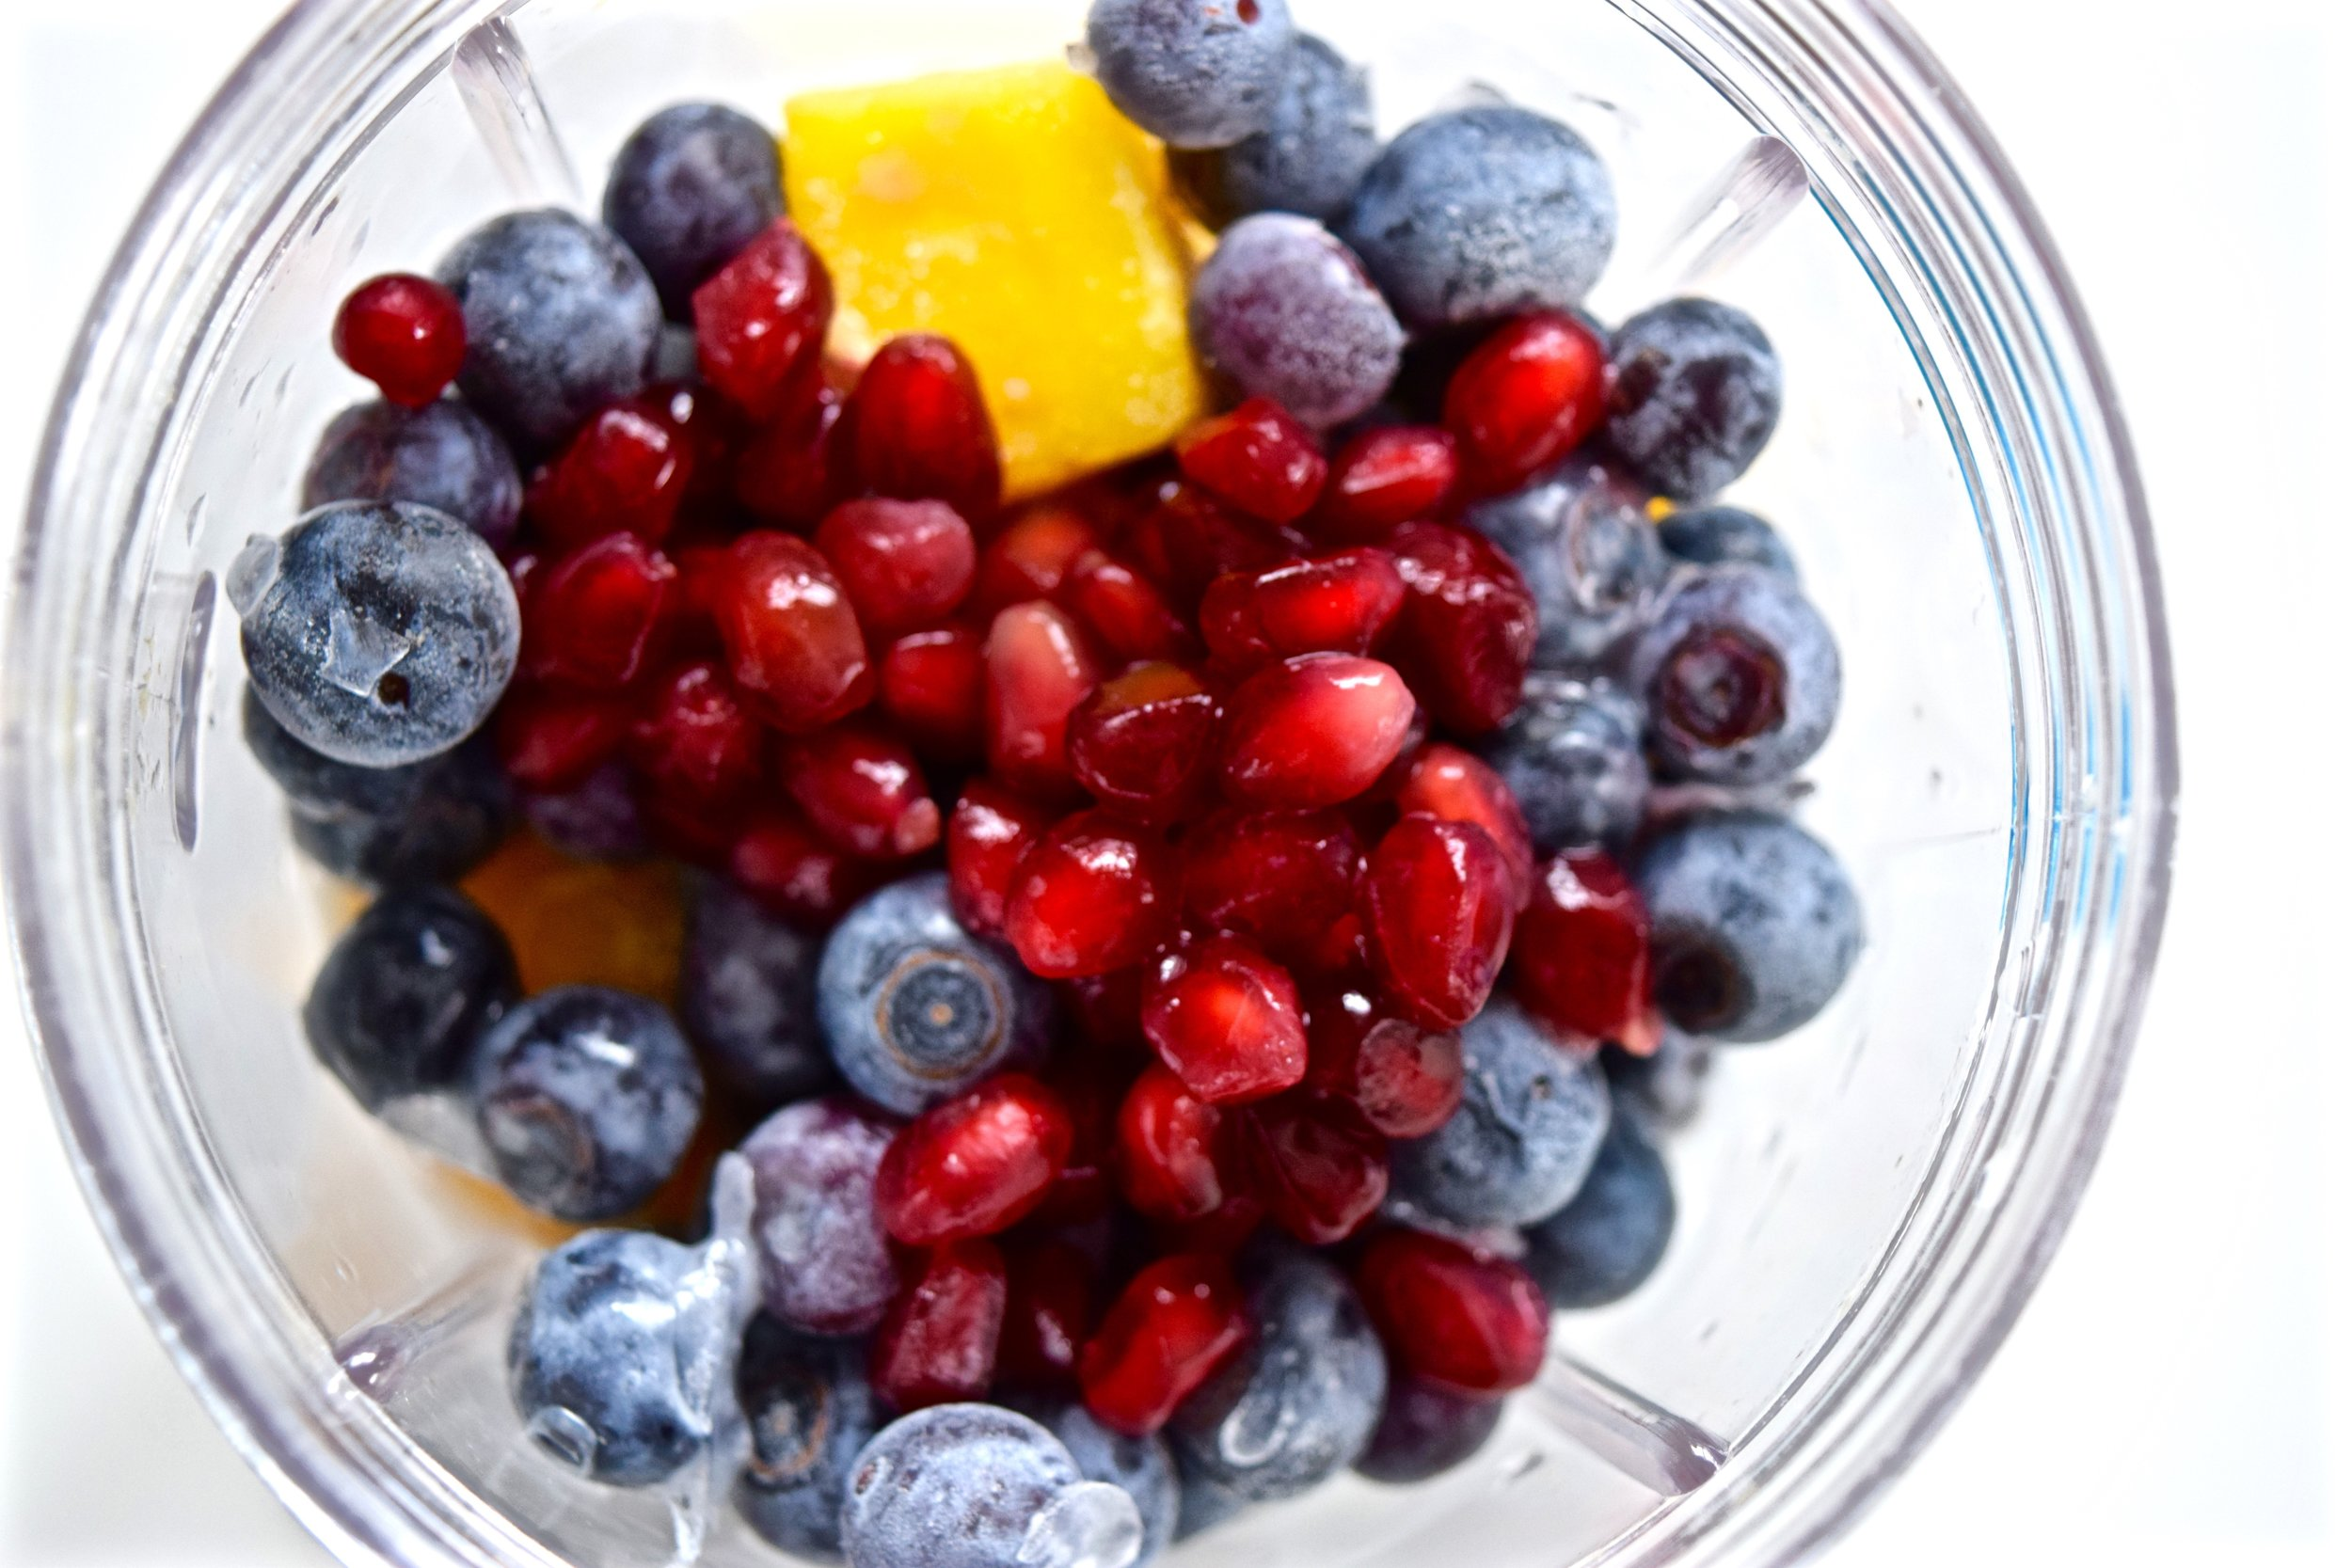 Blueberries rank as part of the Top 10 Foods Highest in Antioxidants!